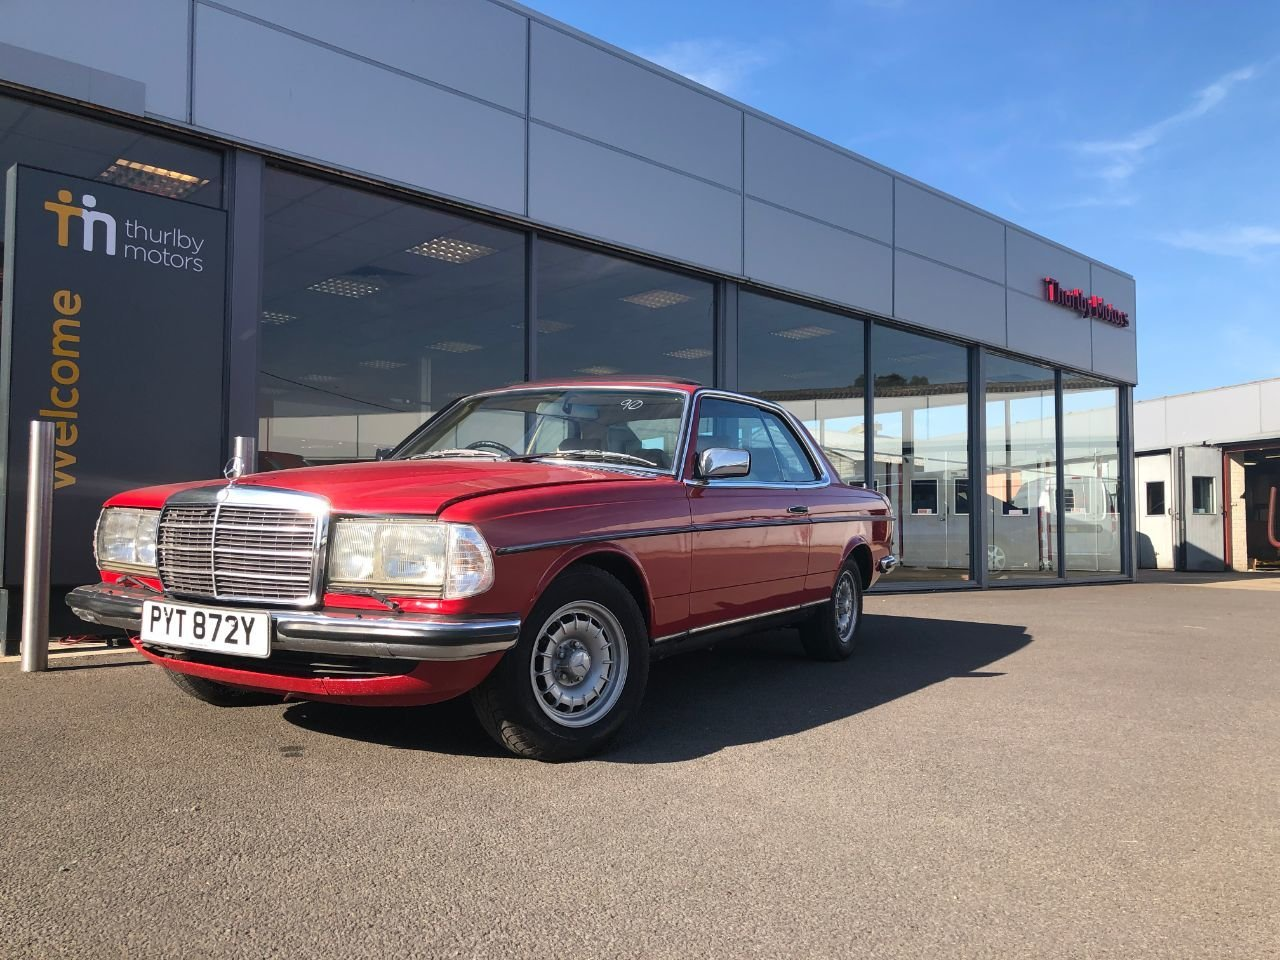 1983 Mercedes 280 Cew Auto For Sale (picture 1 of 6)